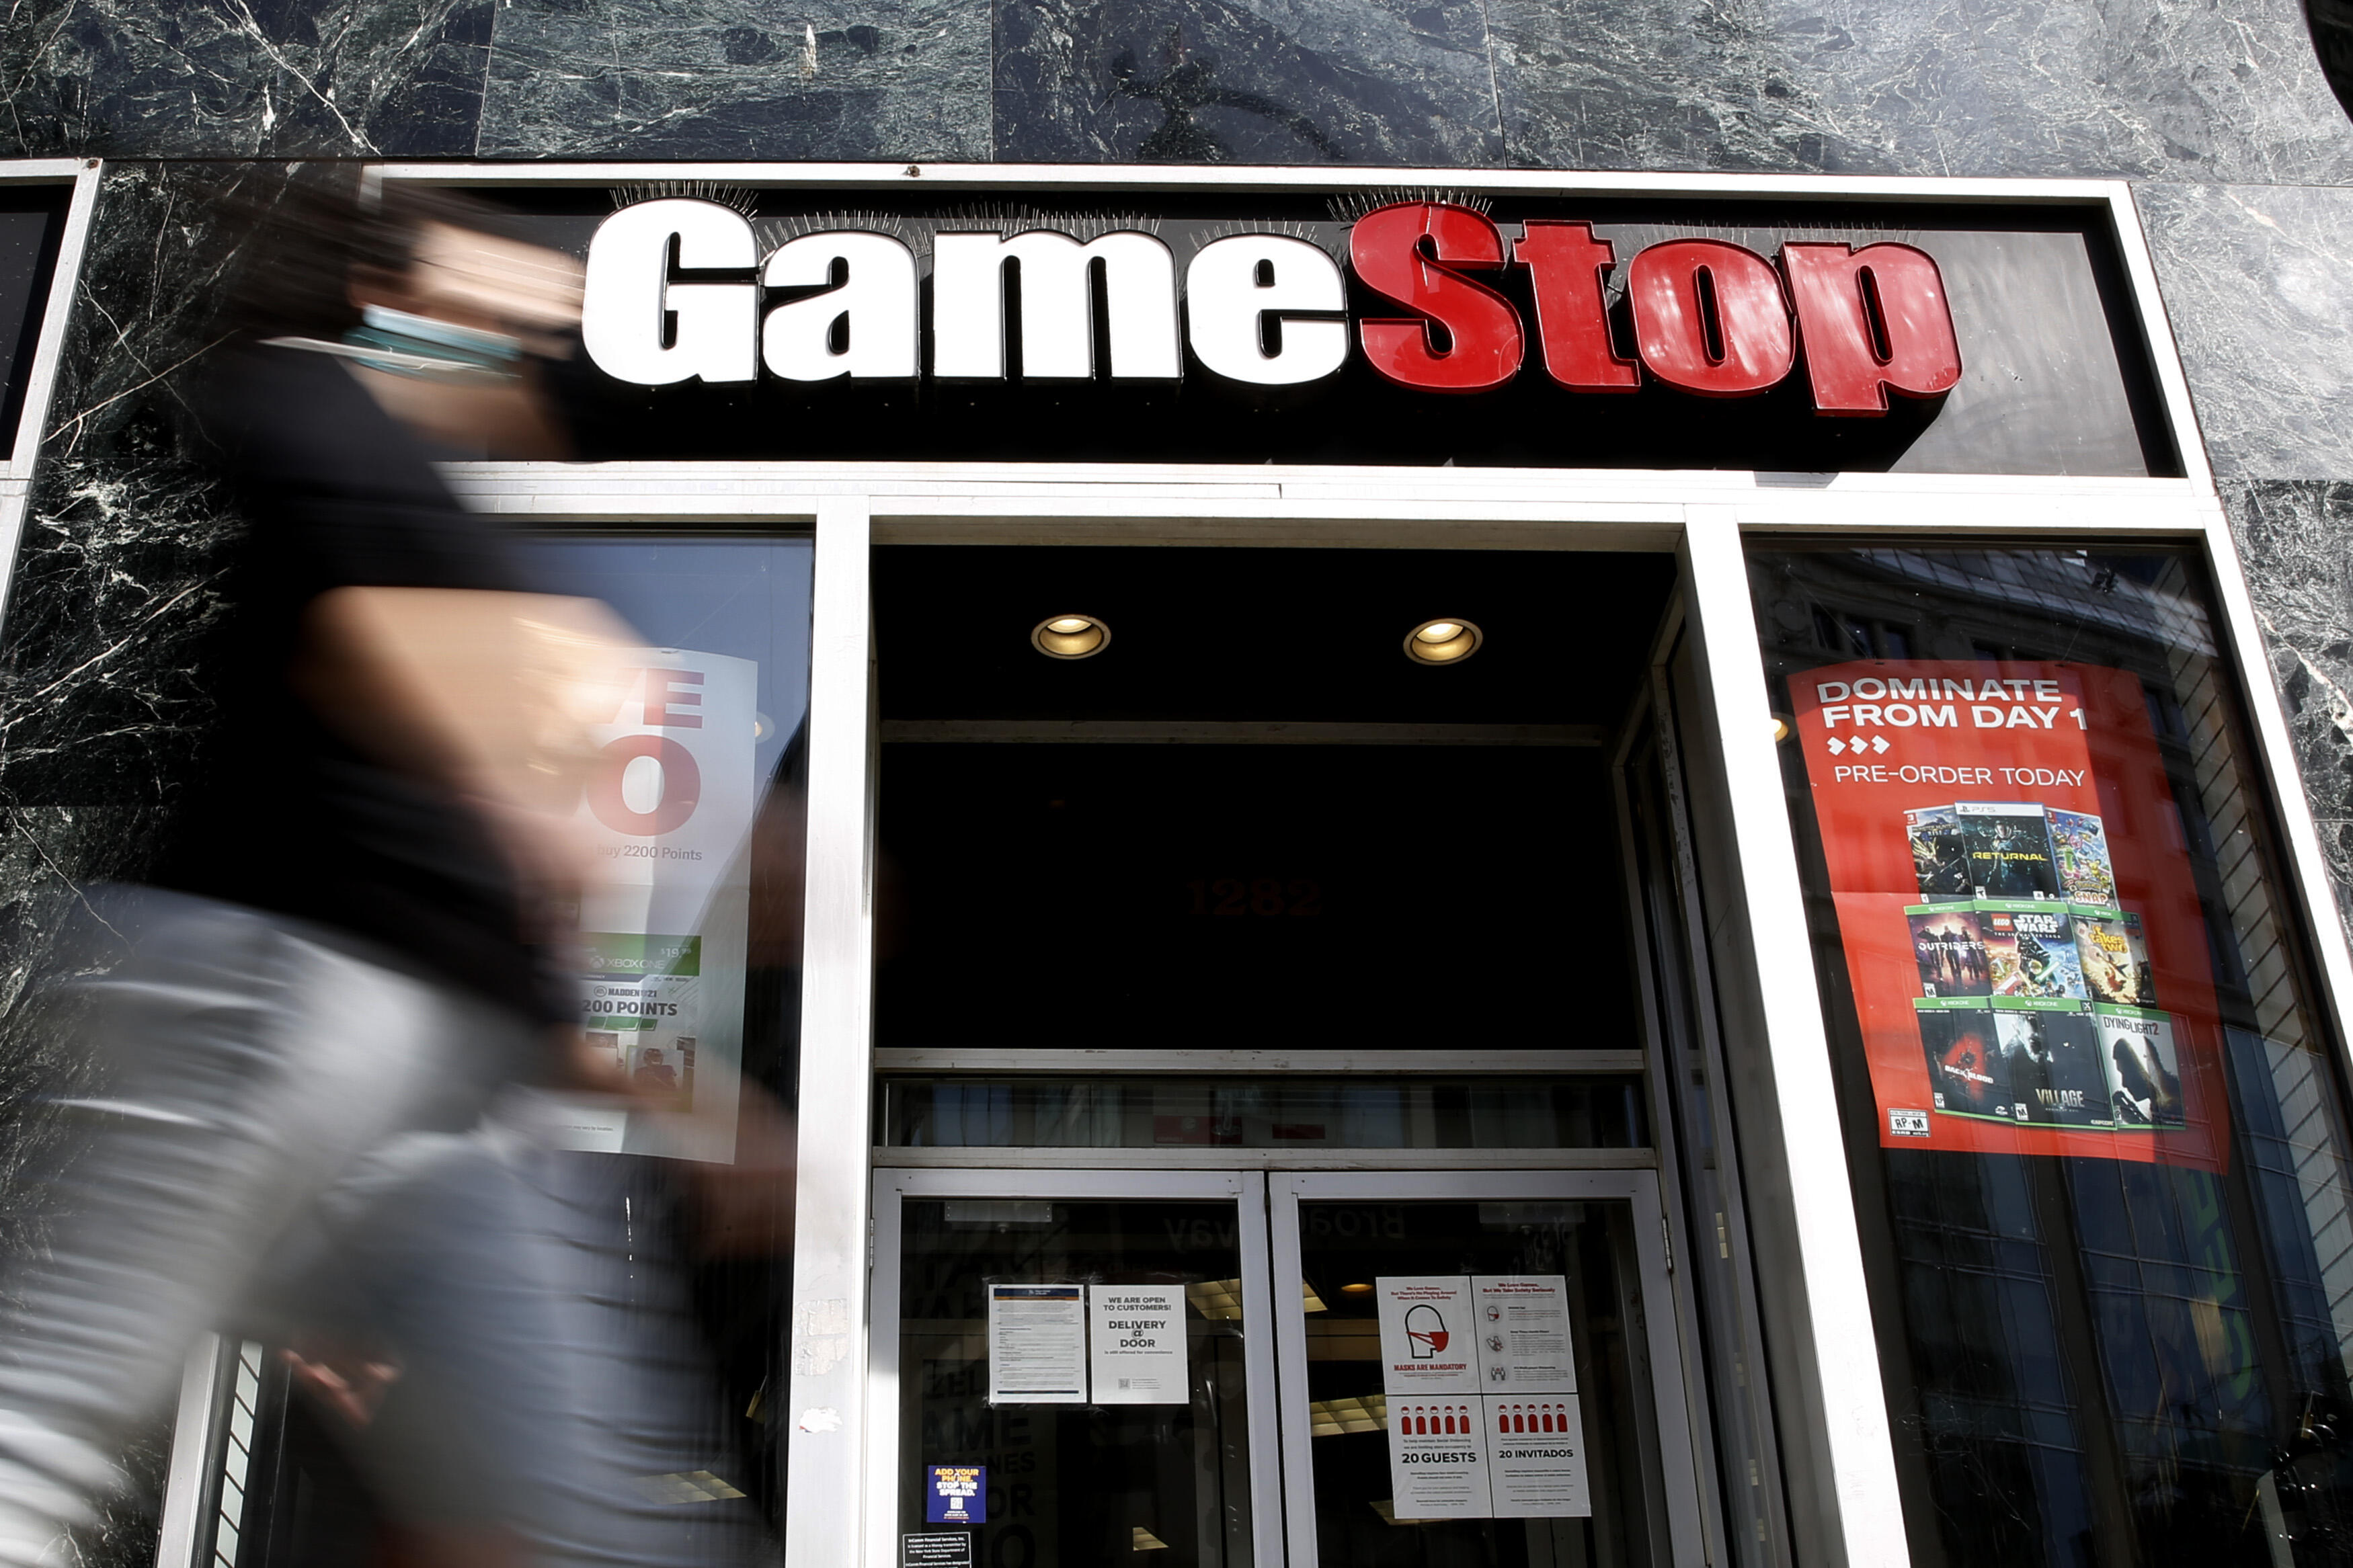 GameStop store on 6th Avenue in New York